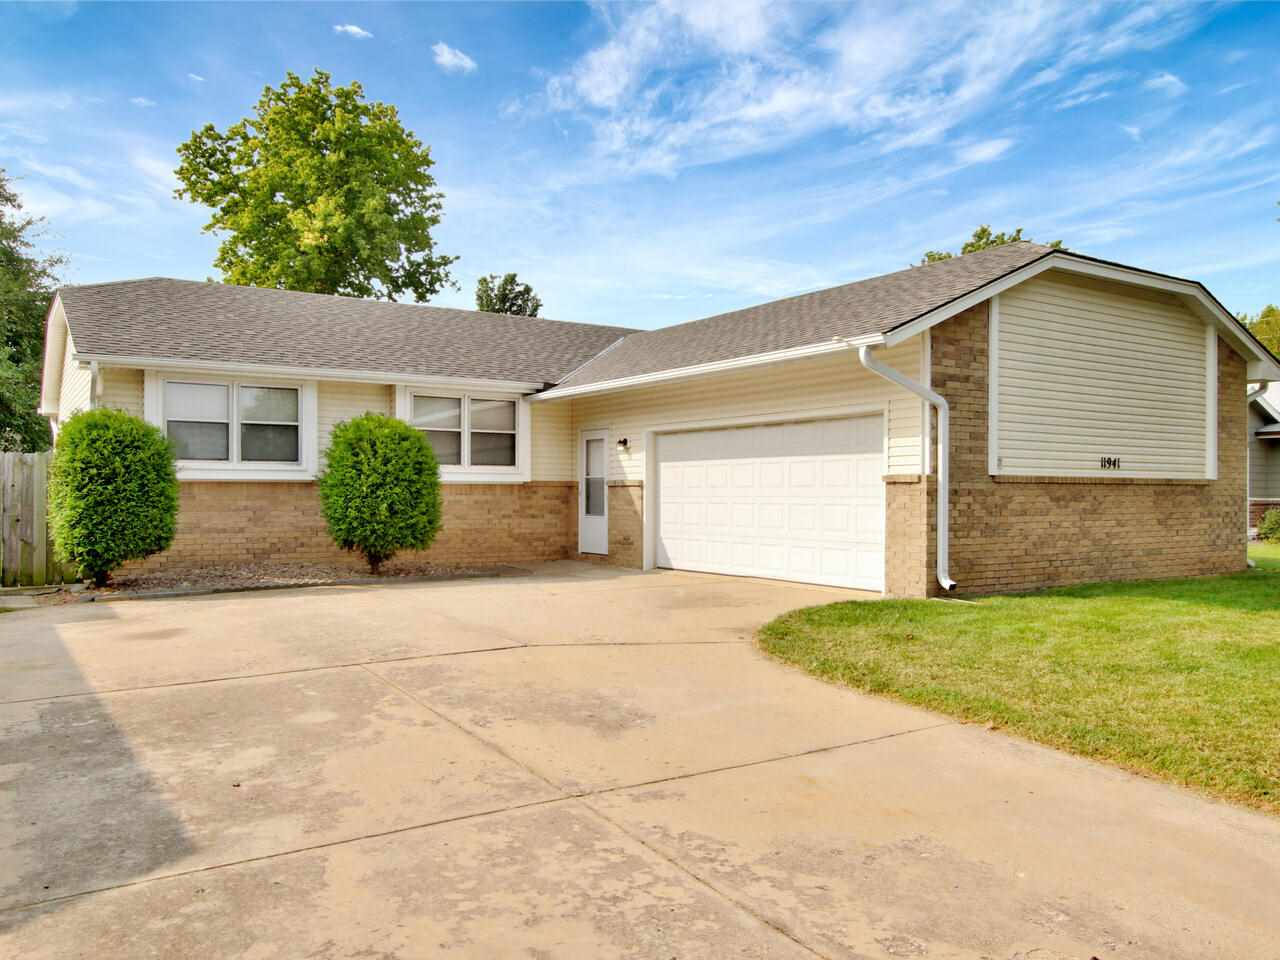 Taking back up offers. Darling move in ready home in sought after maple/119th area. 3 bed/2 bath up,